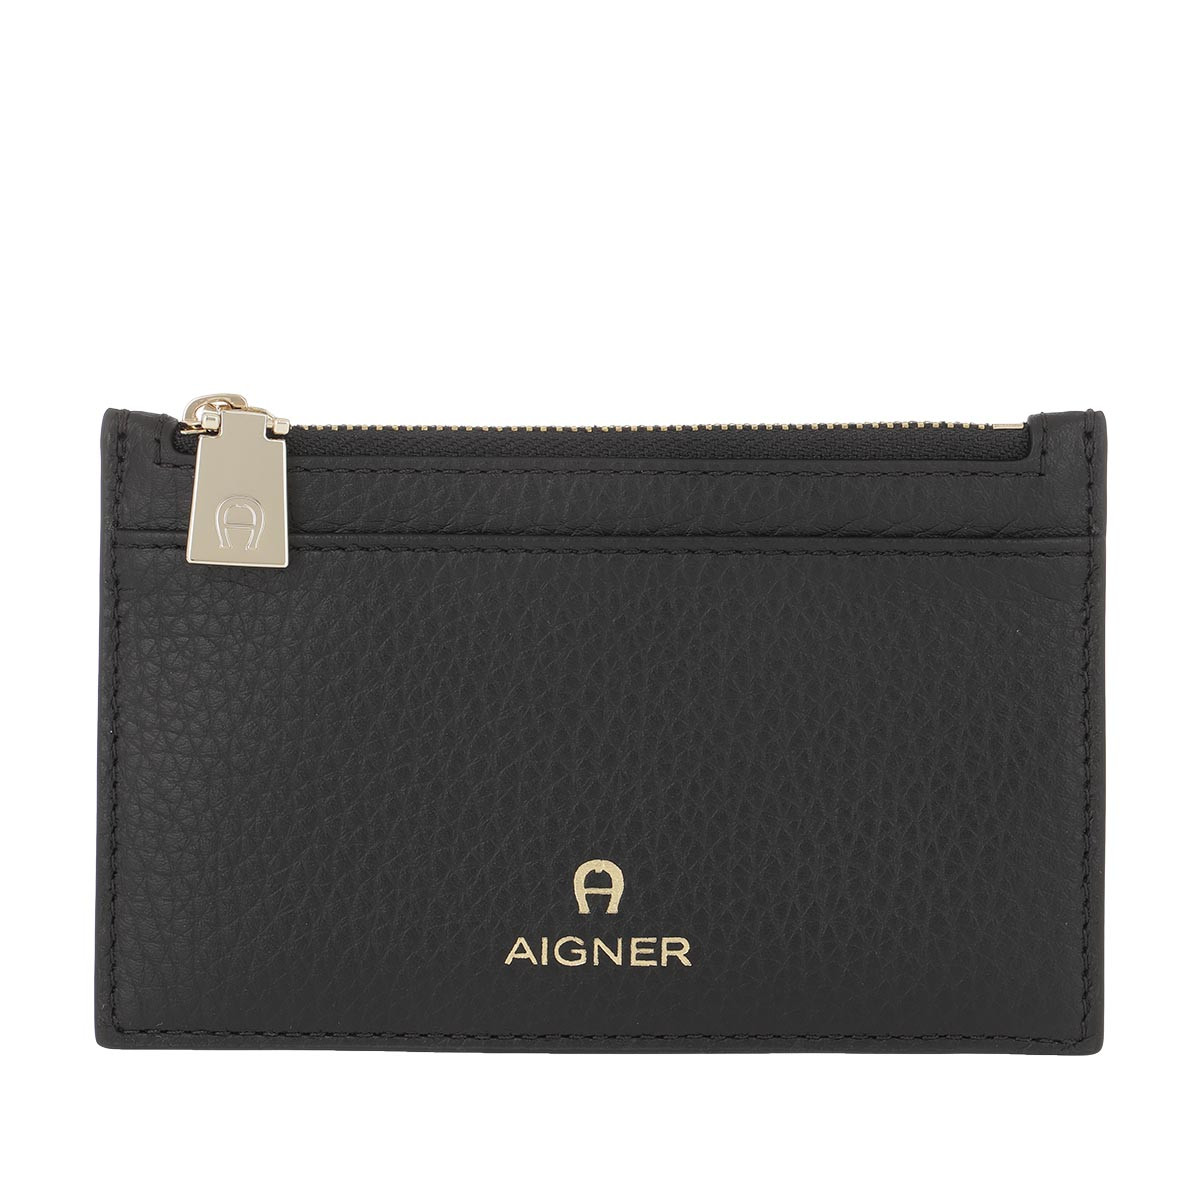 Aigner Portemonnaie - Card Holder Ivy Black - in schwarz - für Damen